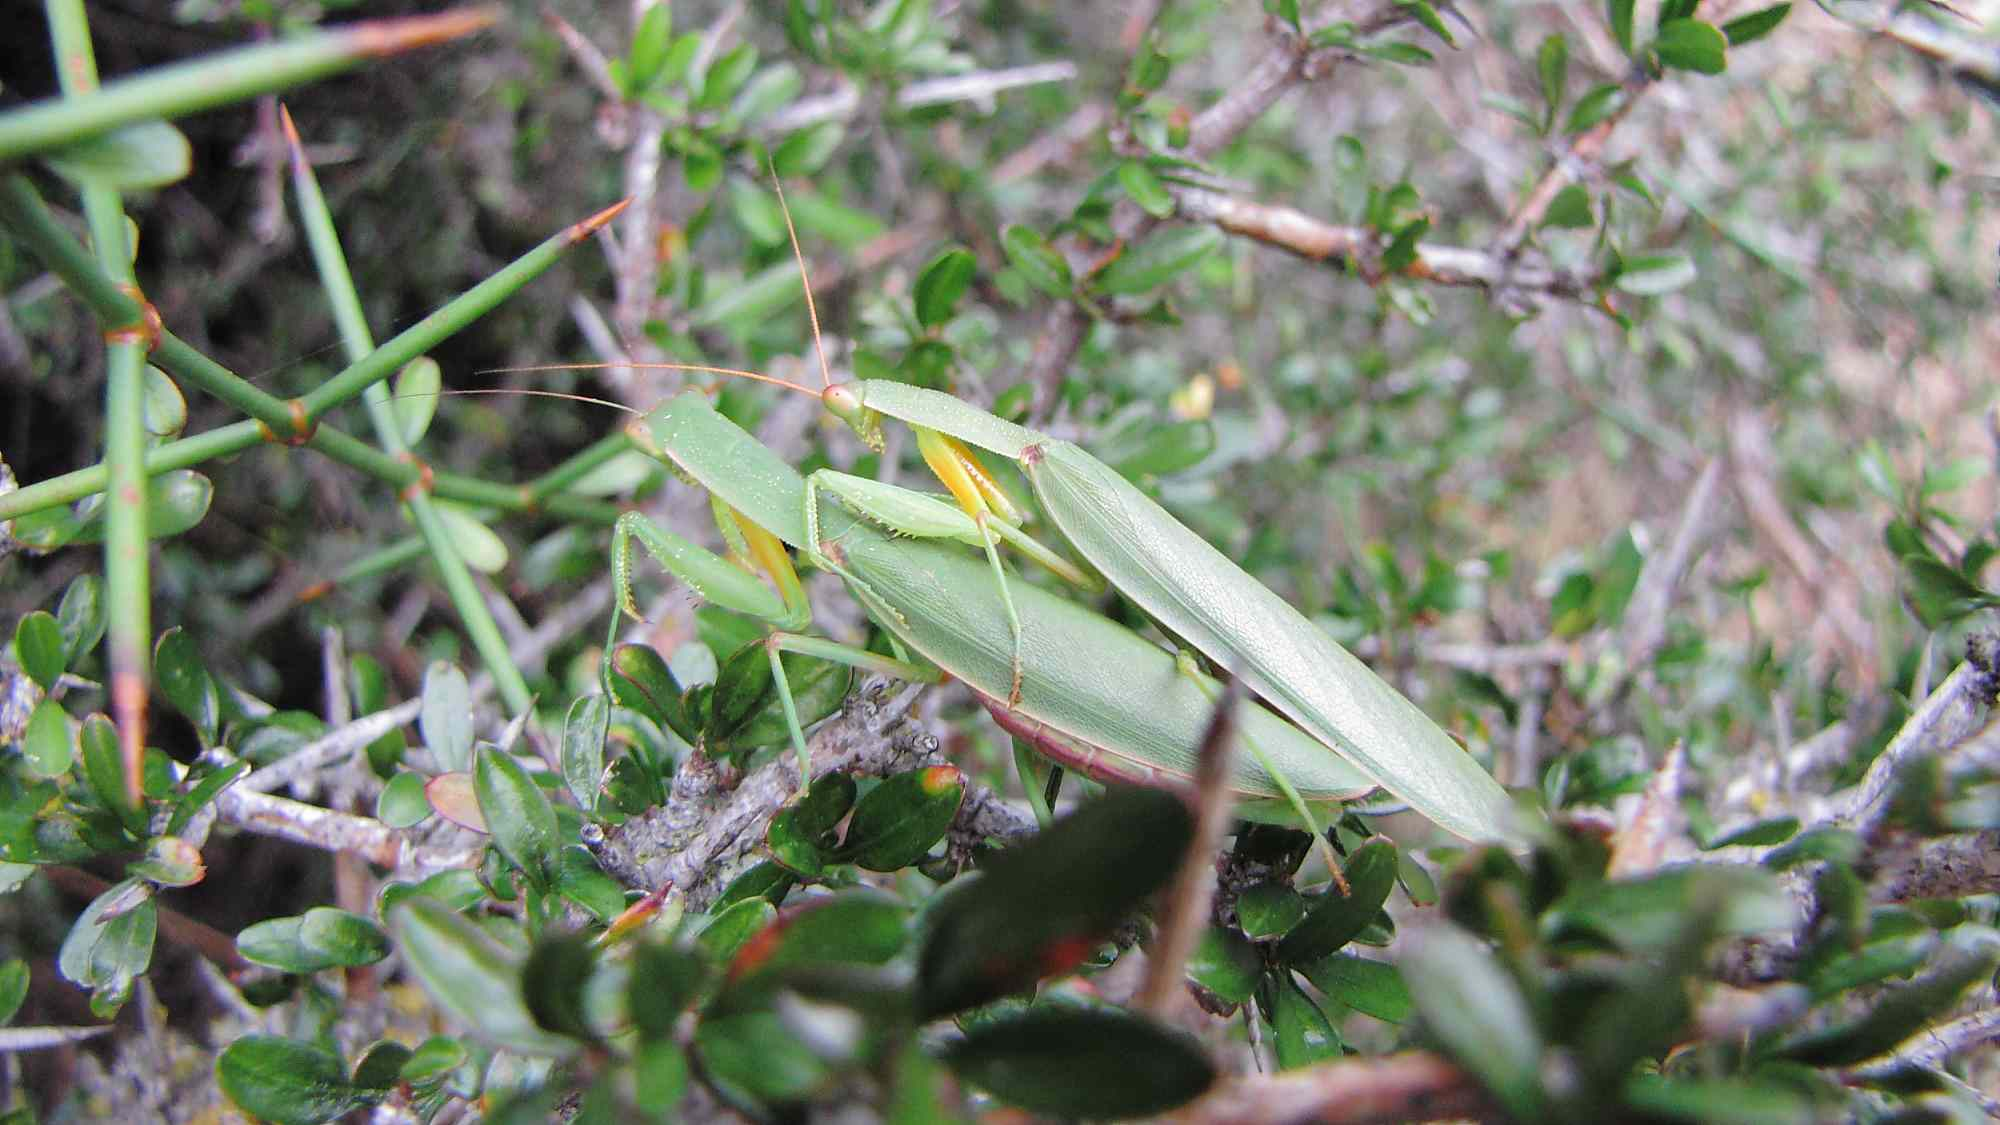 praying mantises mating in thick shrubbery